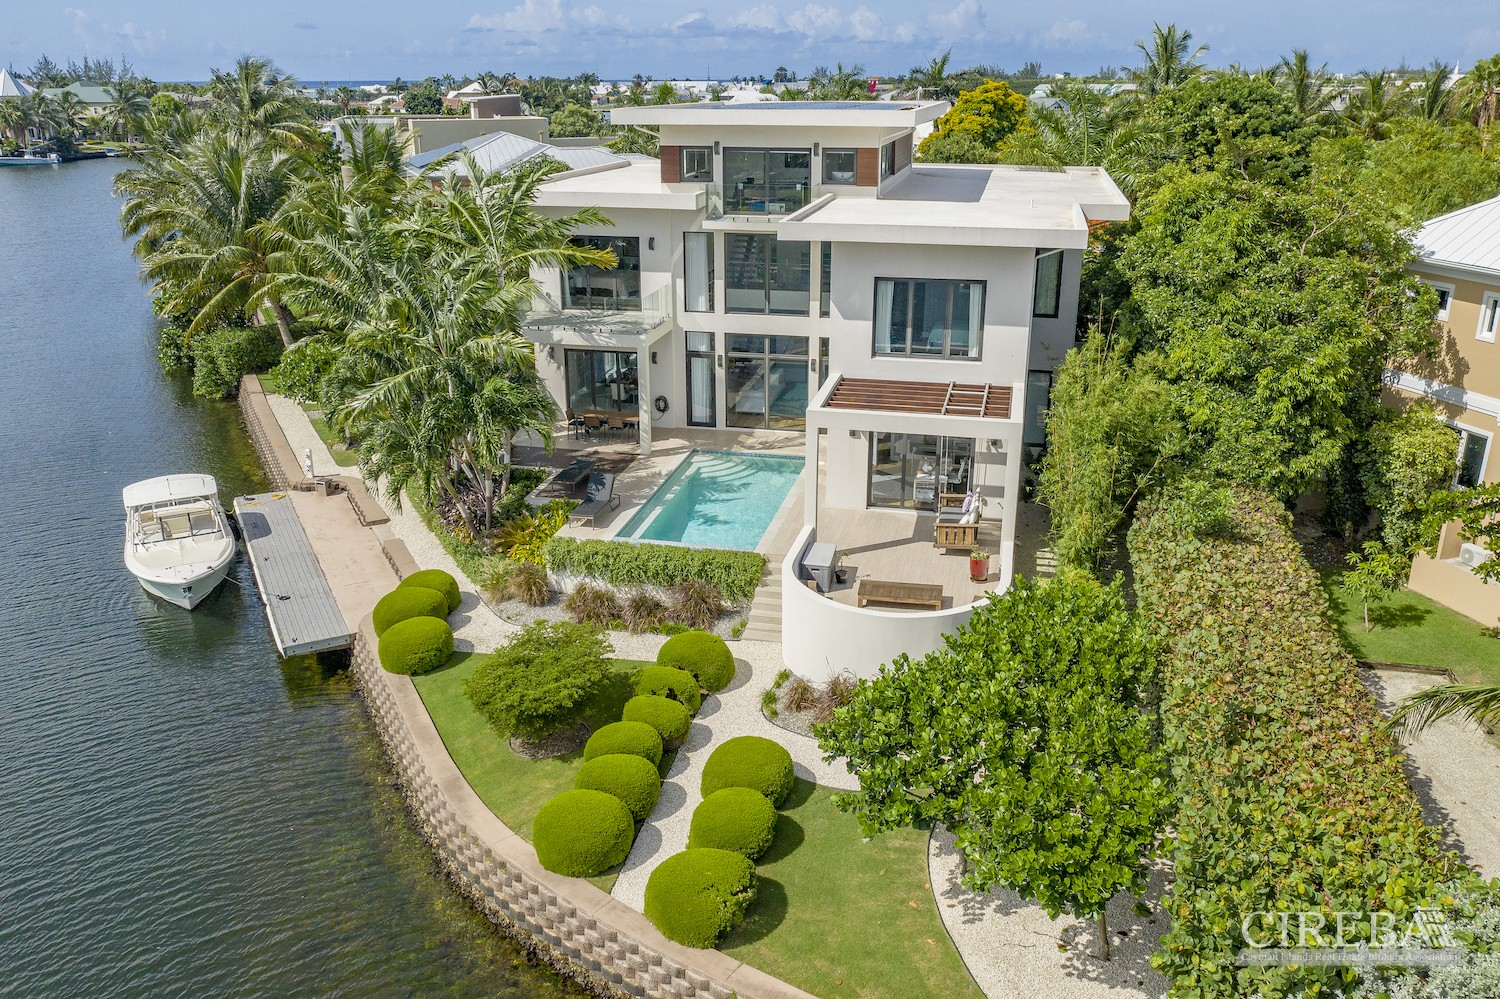 ARIAL VIEW OF HOUSE AND LANDSCAPED GARDENS